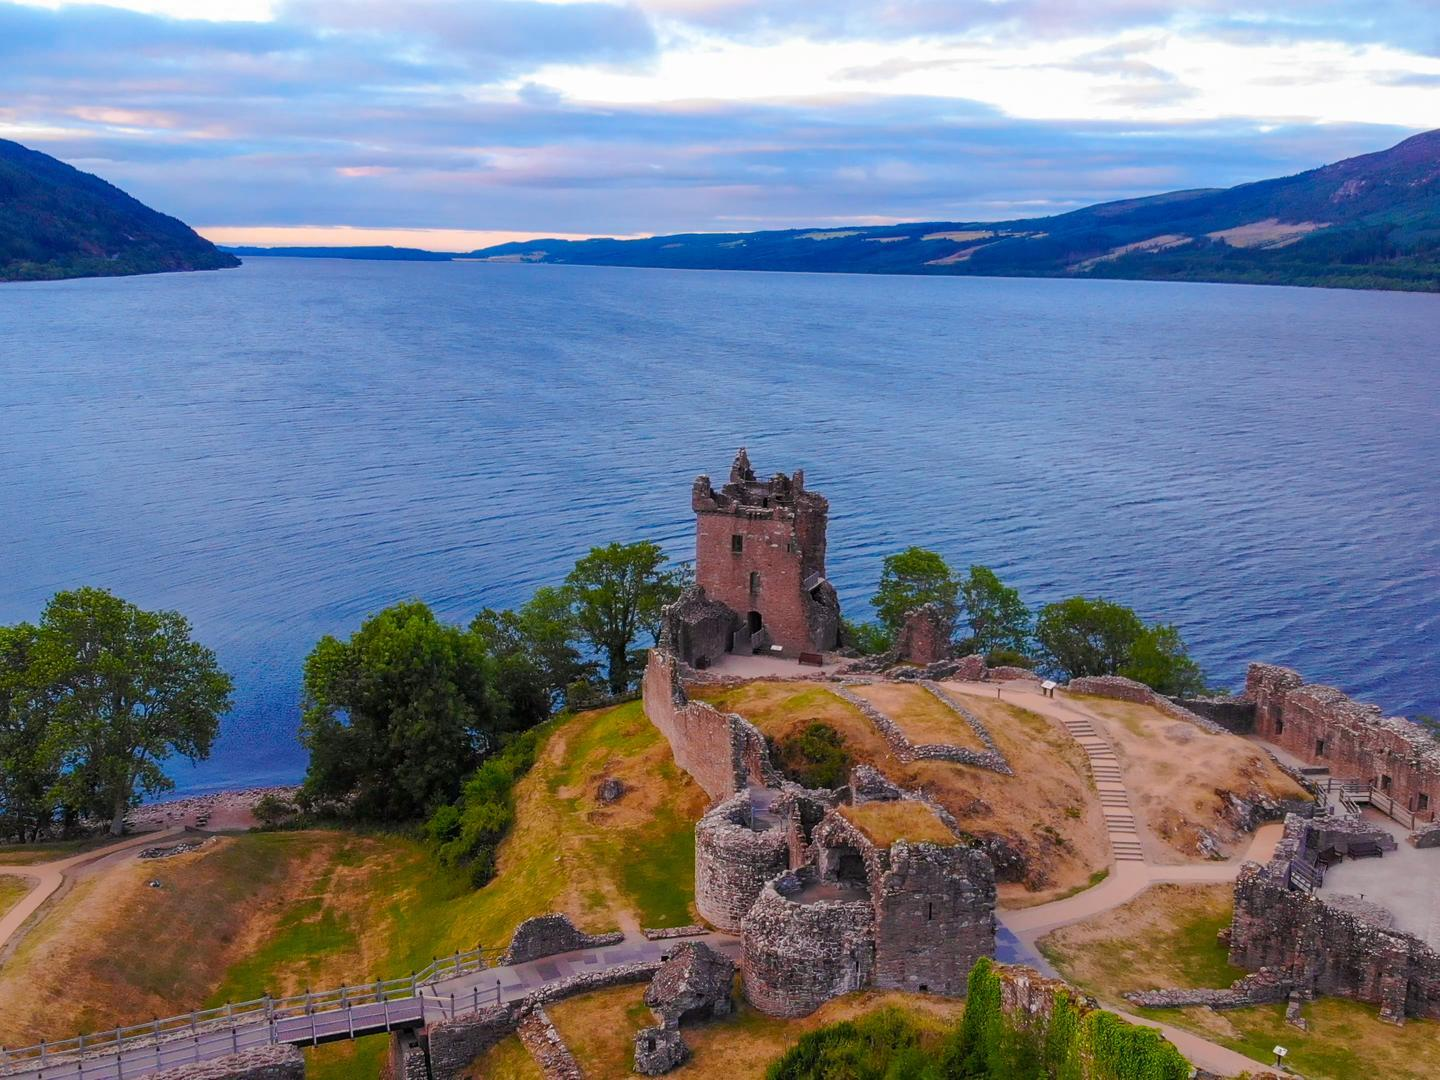 Has the Loch Ness Monster been discovered using Google Maps?